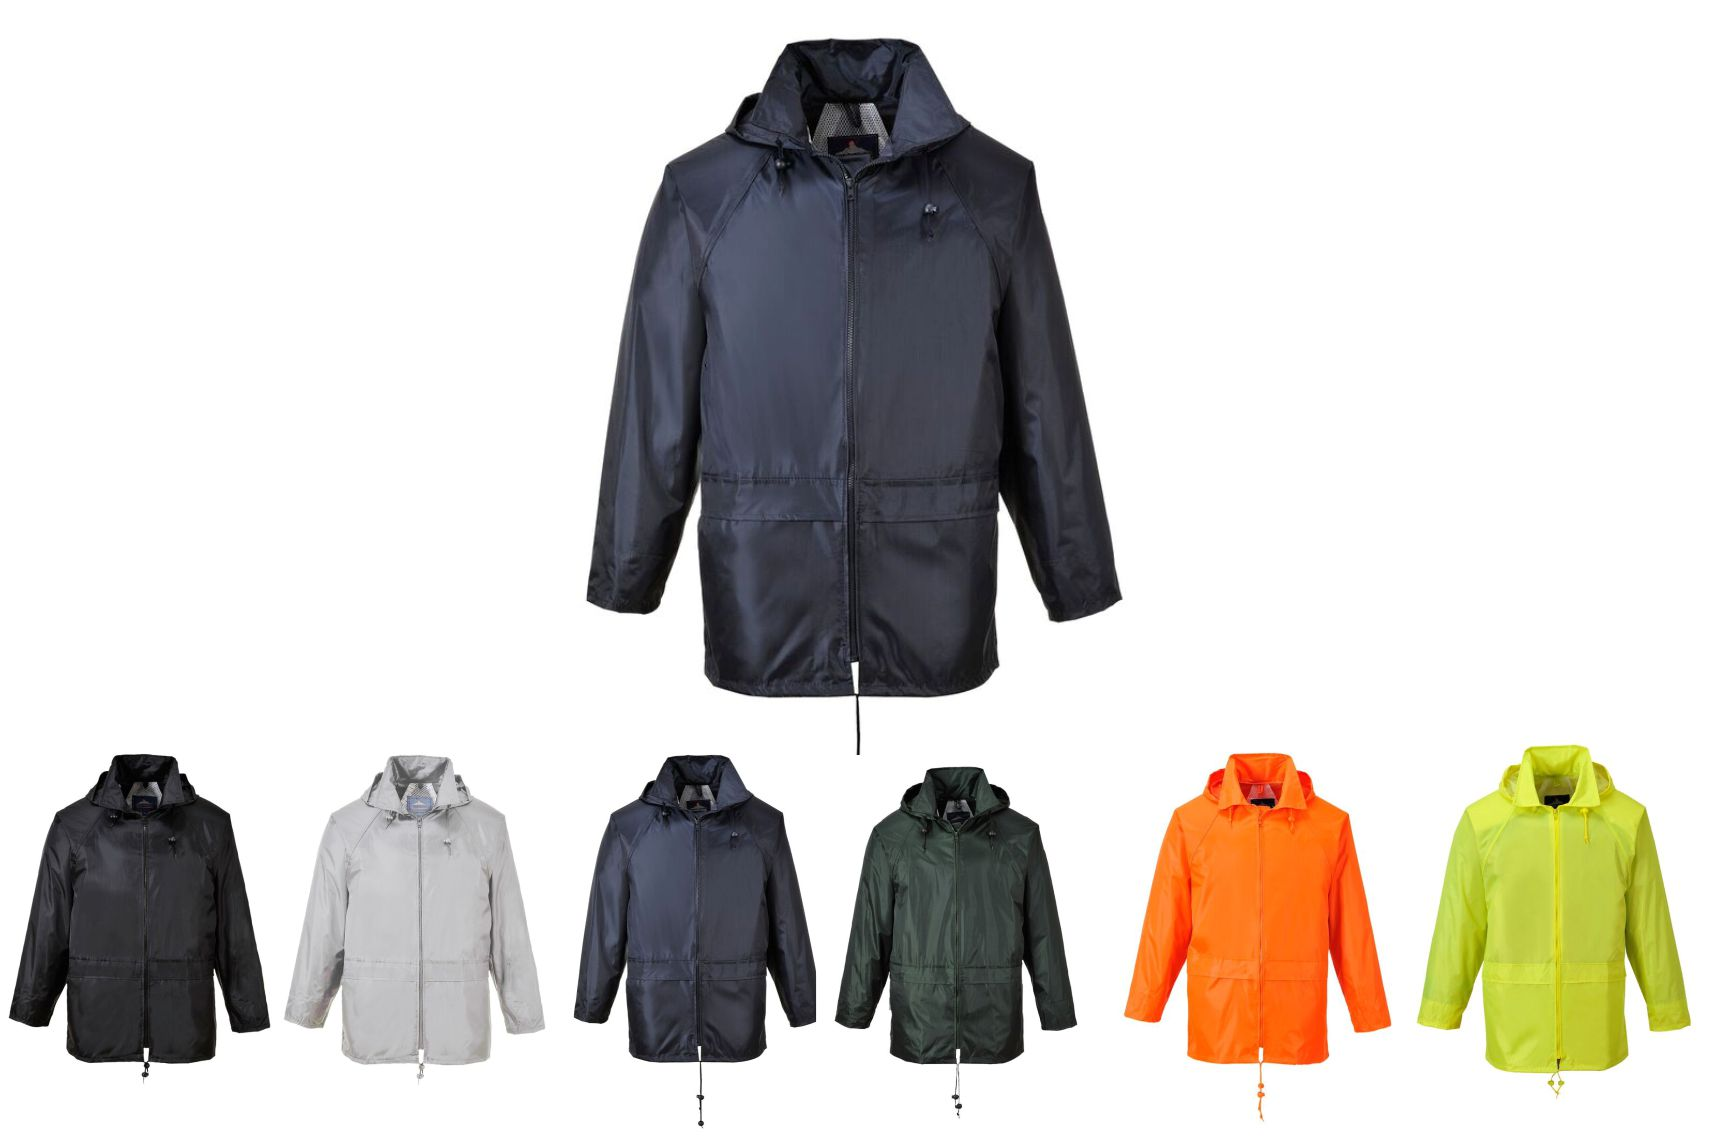 S440 Dumphries waterproof jacket